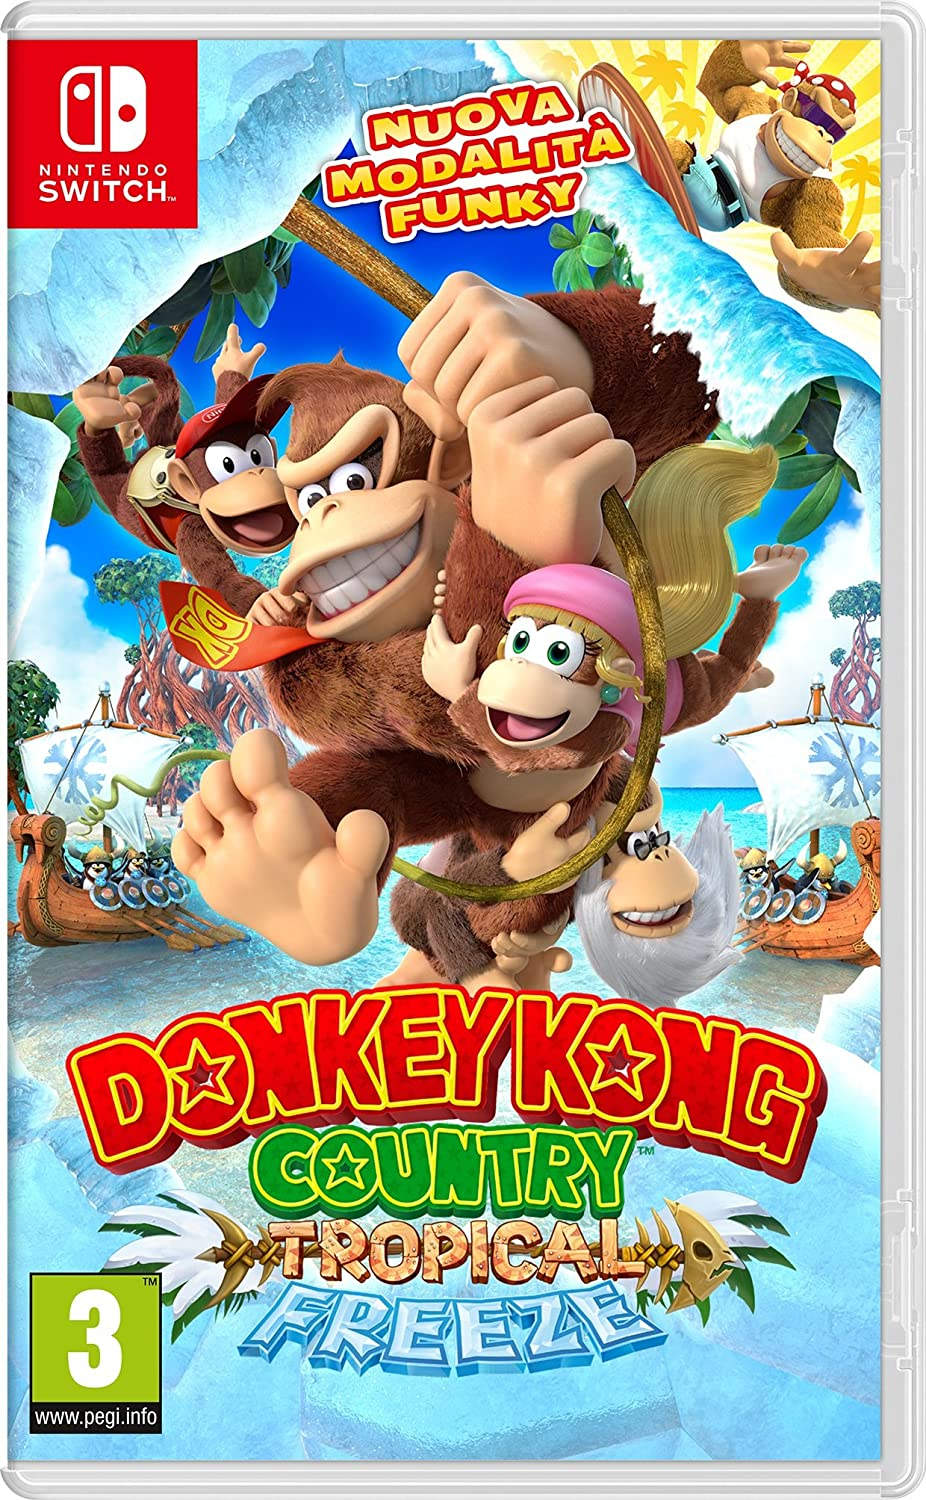 DONKEY KONG COUNTRY TROPICAL (NINTENDOSWITCH)